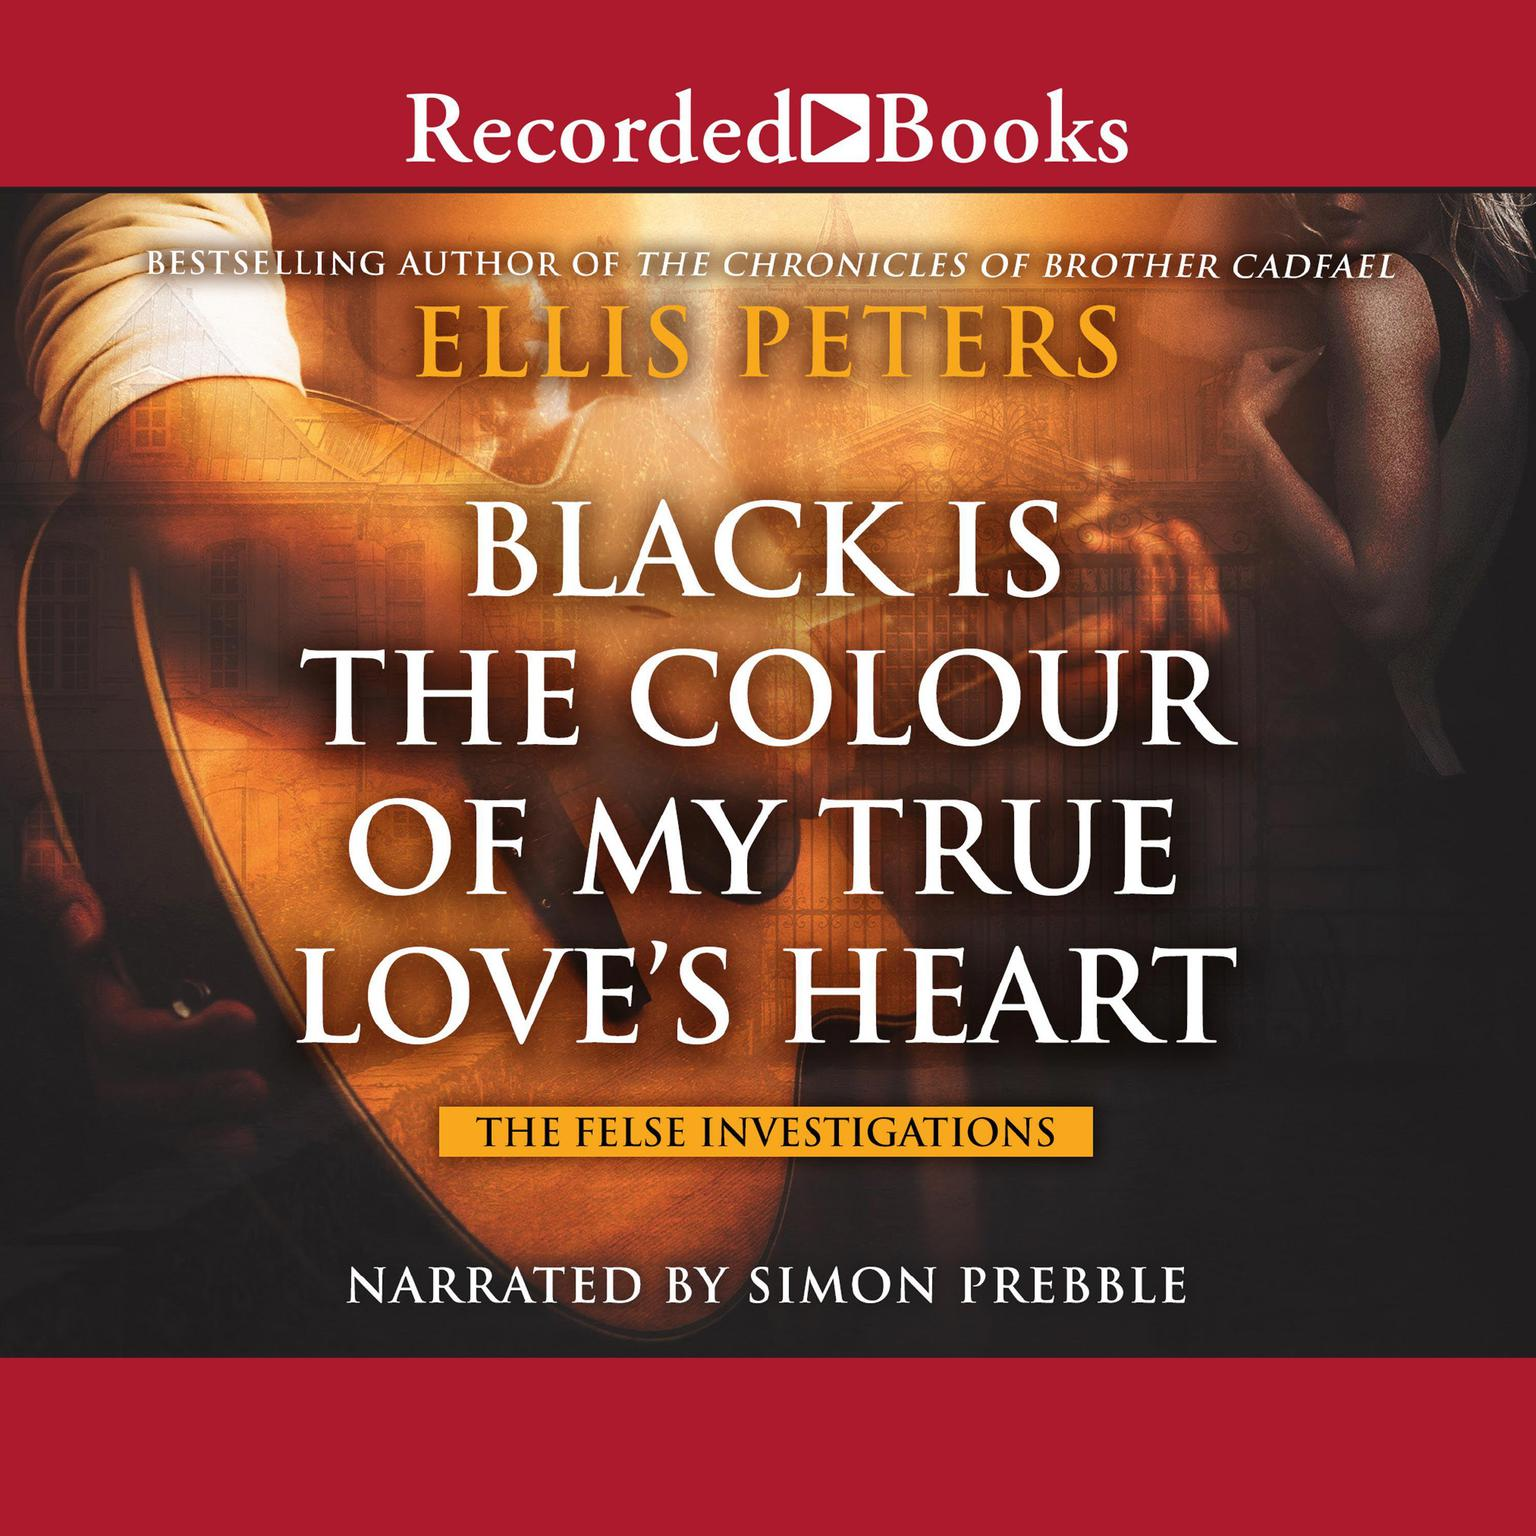 Printable Black is the Colour of My True Love's Heart Audiobook Cover Art